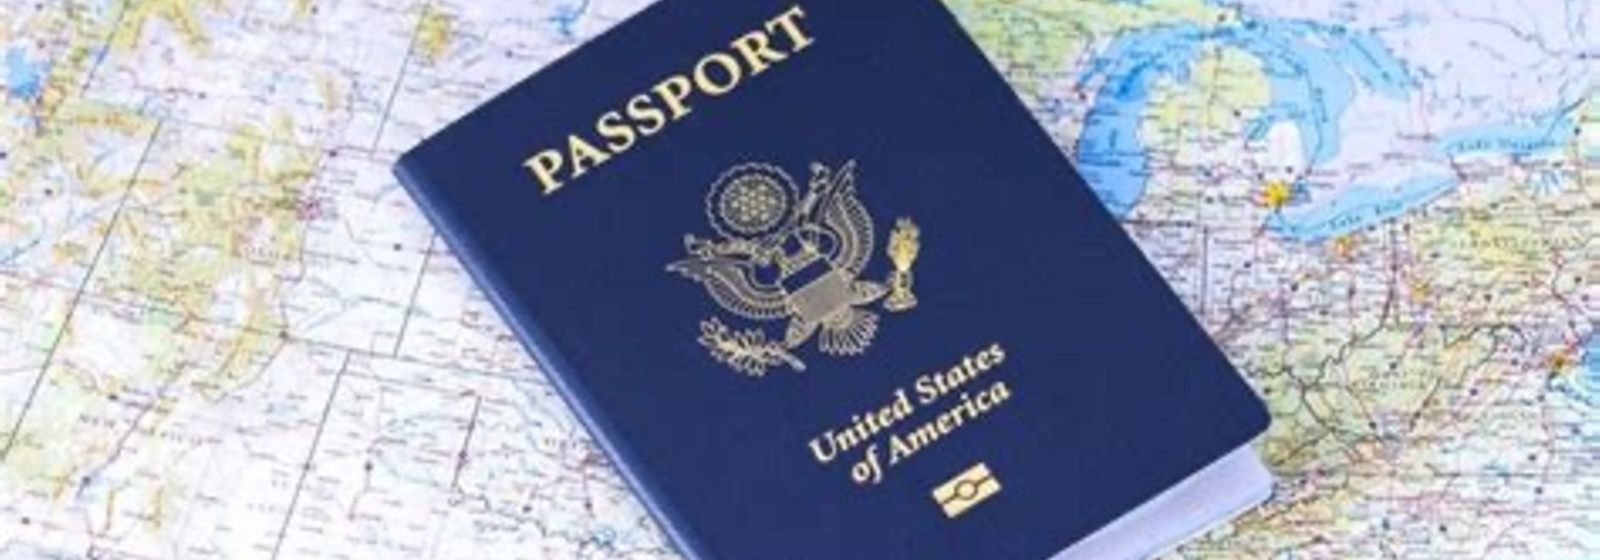 U.S. Citizens Will Need Vaccine Passport to Travel in Europe